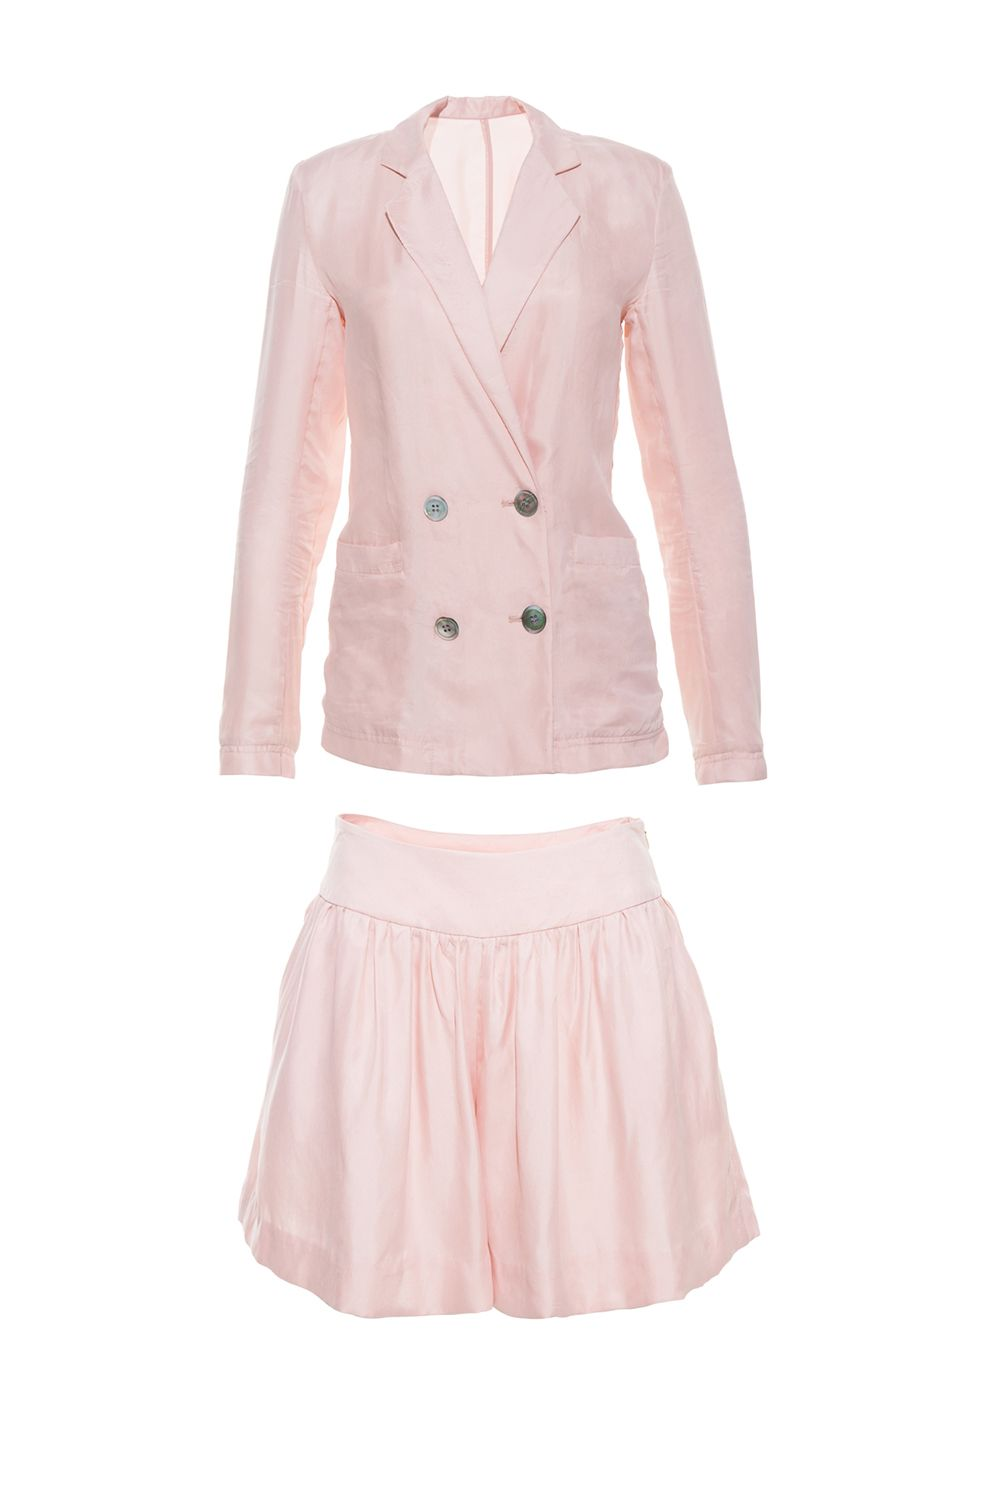 "<p>No explanation of its closet-renewal powers needed because pink. shorts. suit. </p><p>Front Row Shop shorts suit, $101, <a href=""http://rstyle.me/n/bqznc2bqb8f"">frontrowshop.com</a>.</p>"